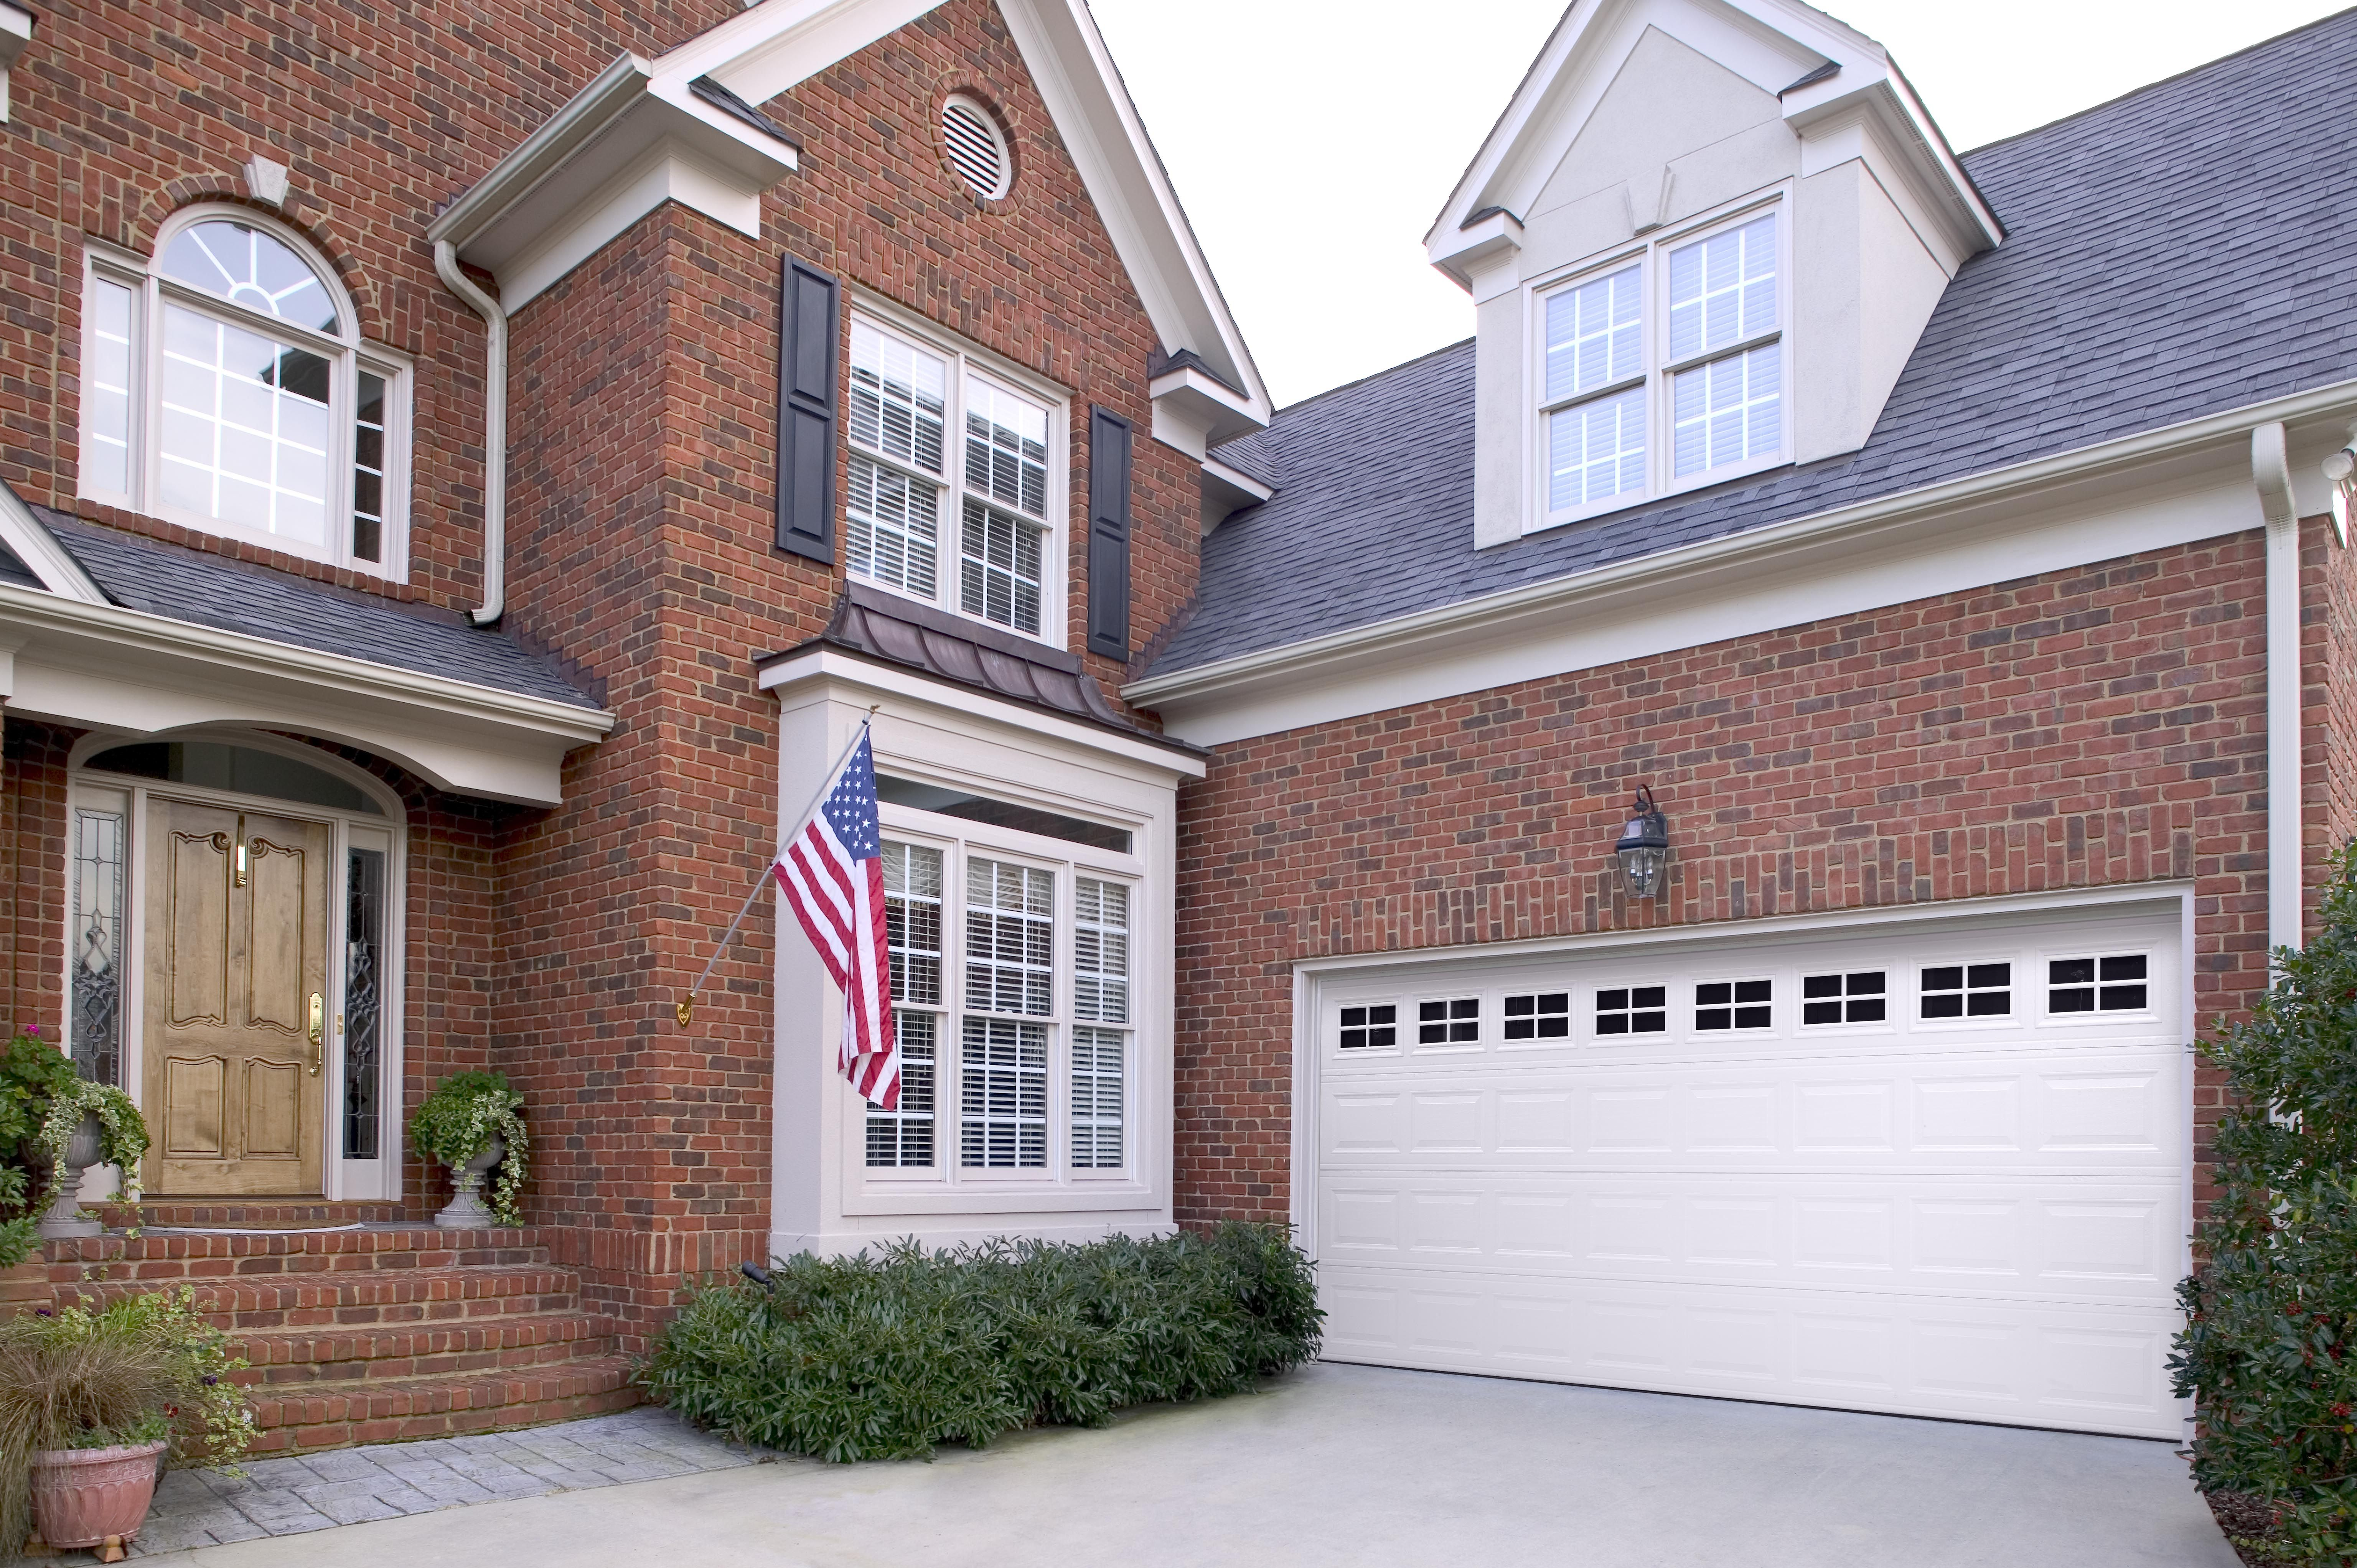 Amarr Short Panel Garage Door In True White With Stockton Windows.  Available In Olympus,